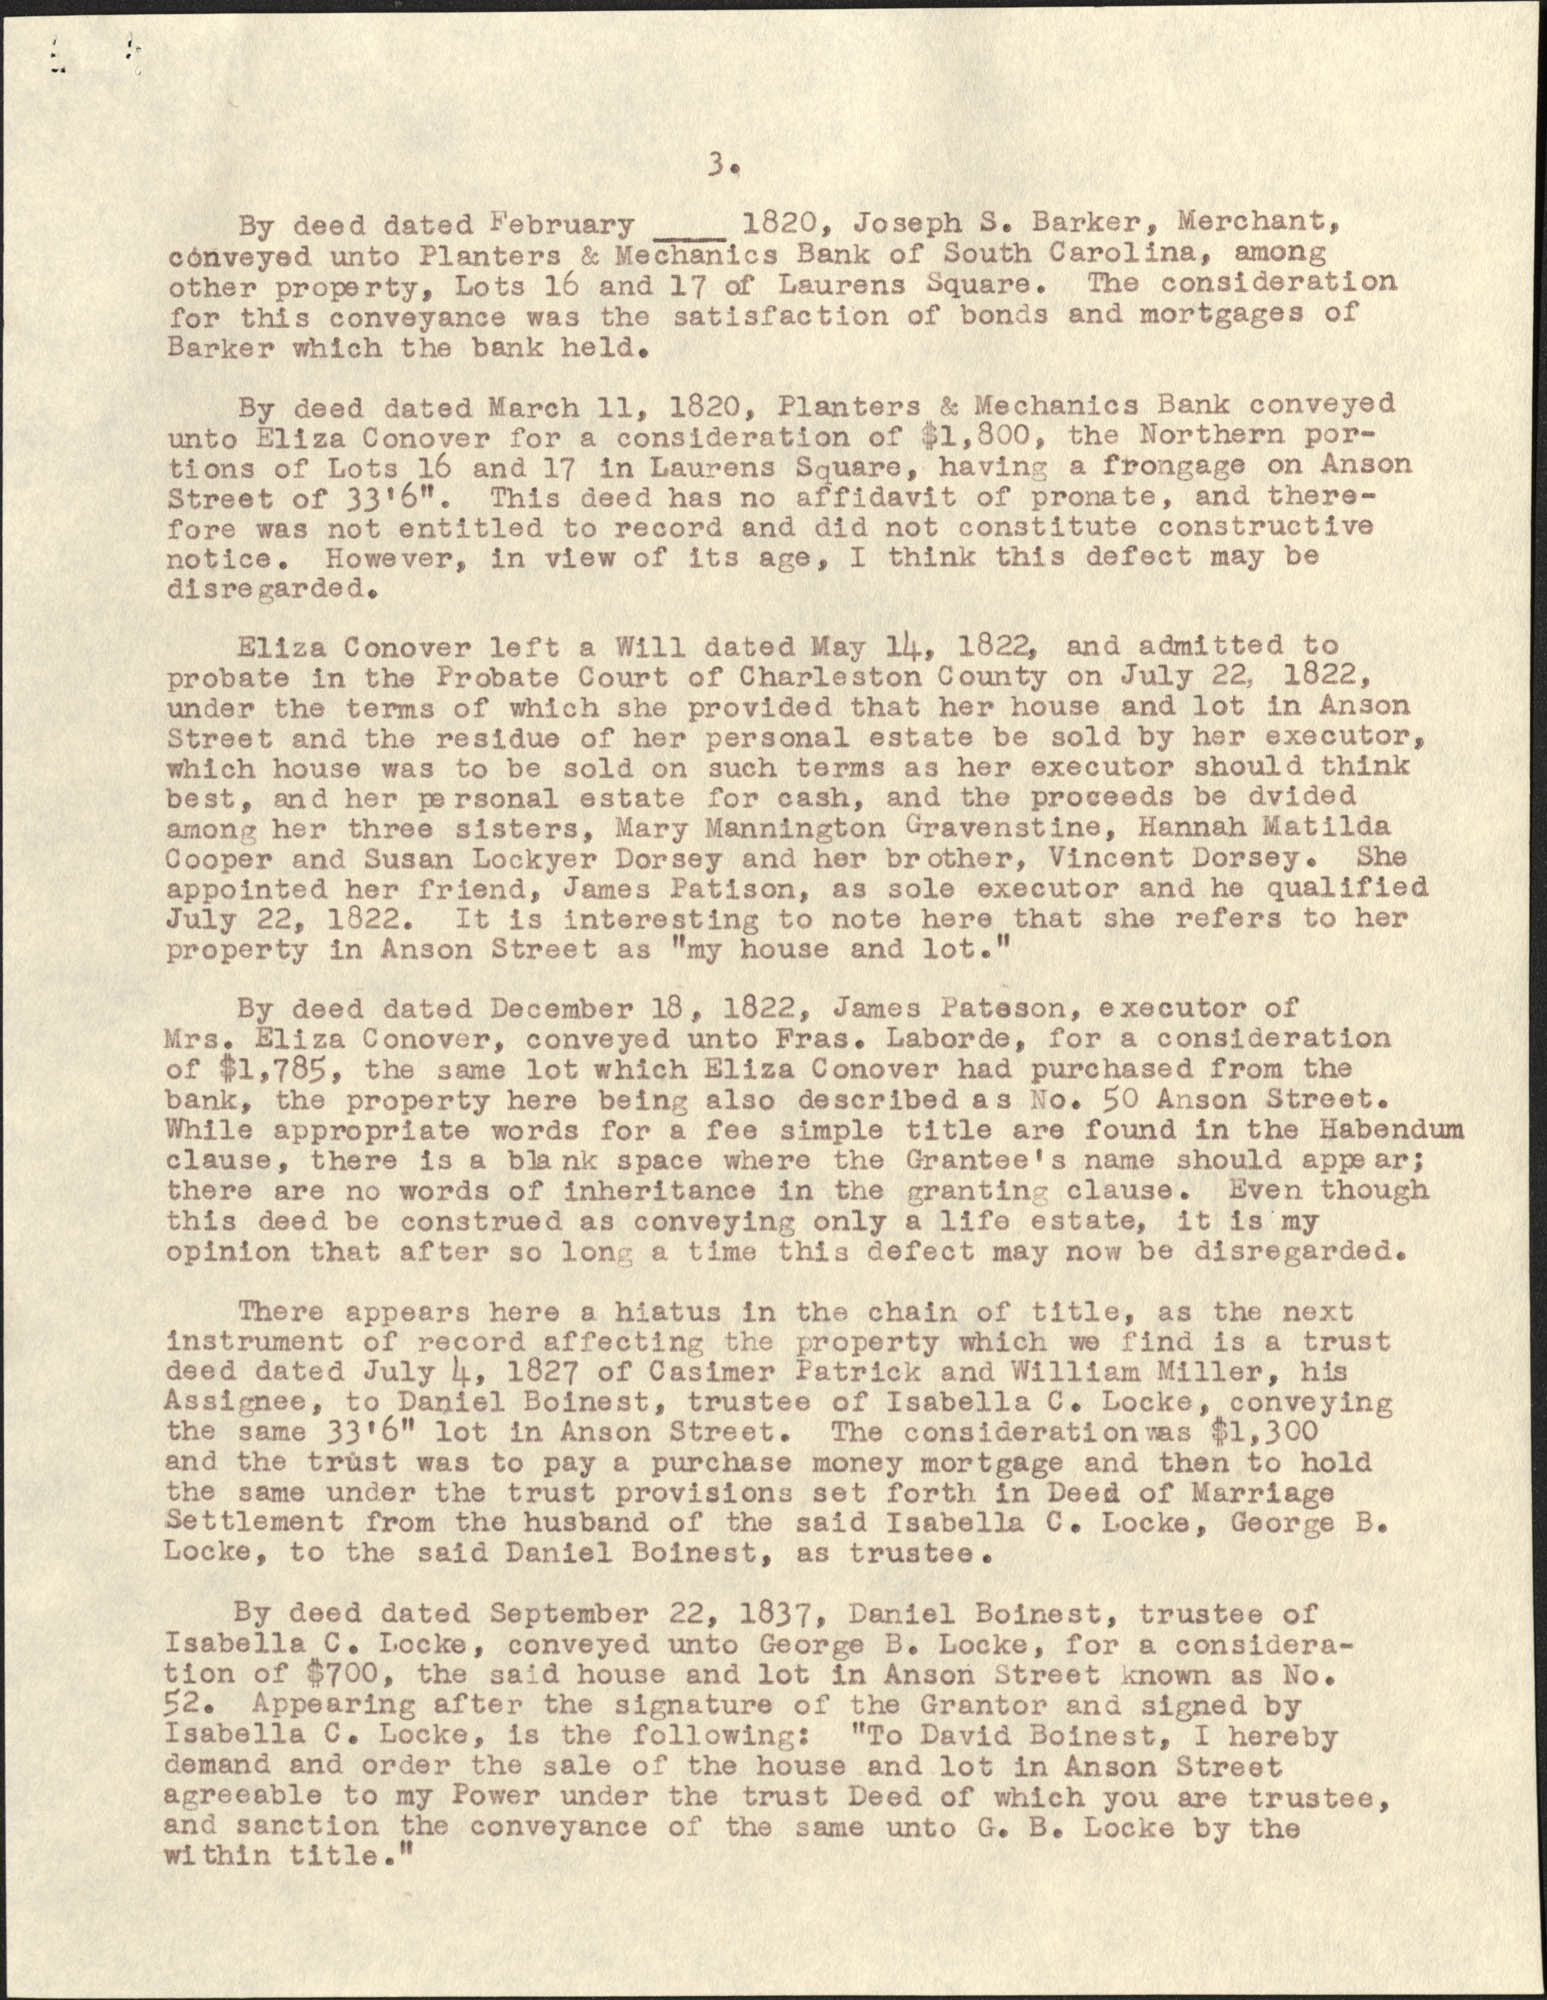 Letter from S. Henry Edmunds to Ben Scott Whaley, May 6, 1959, Page 3